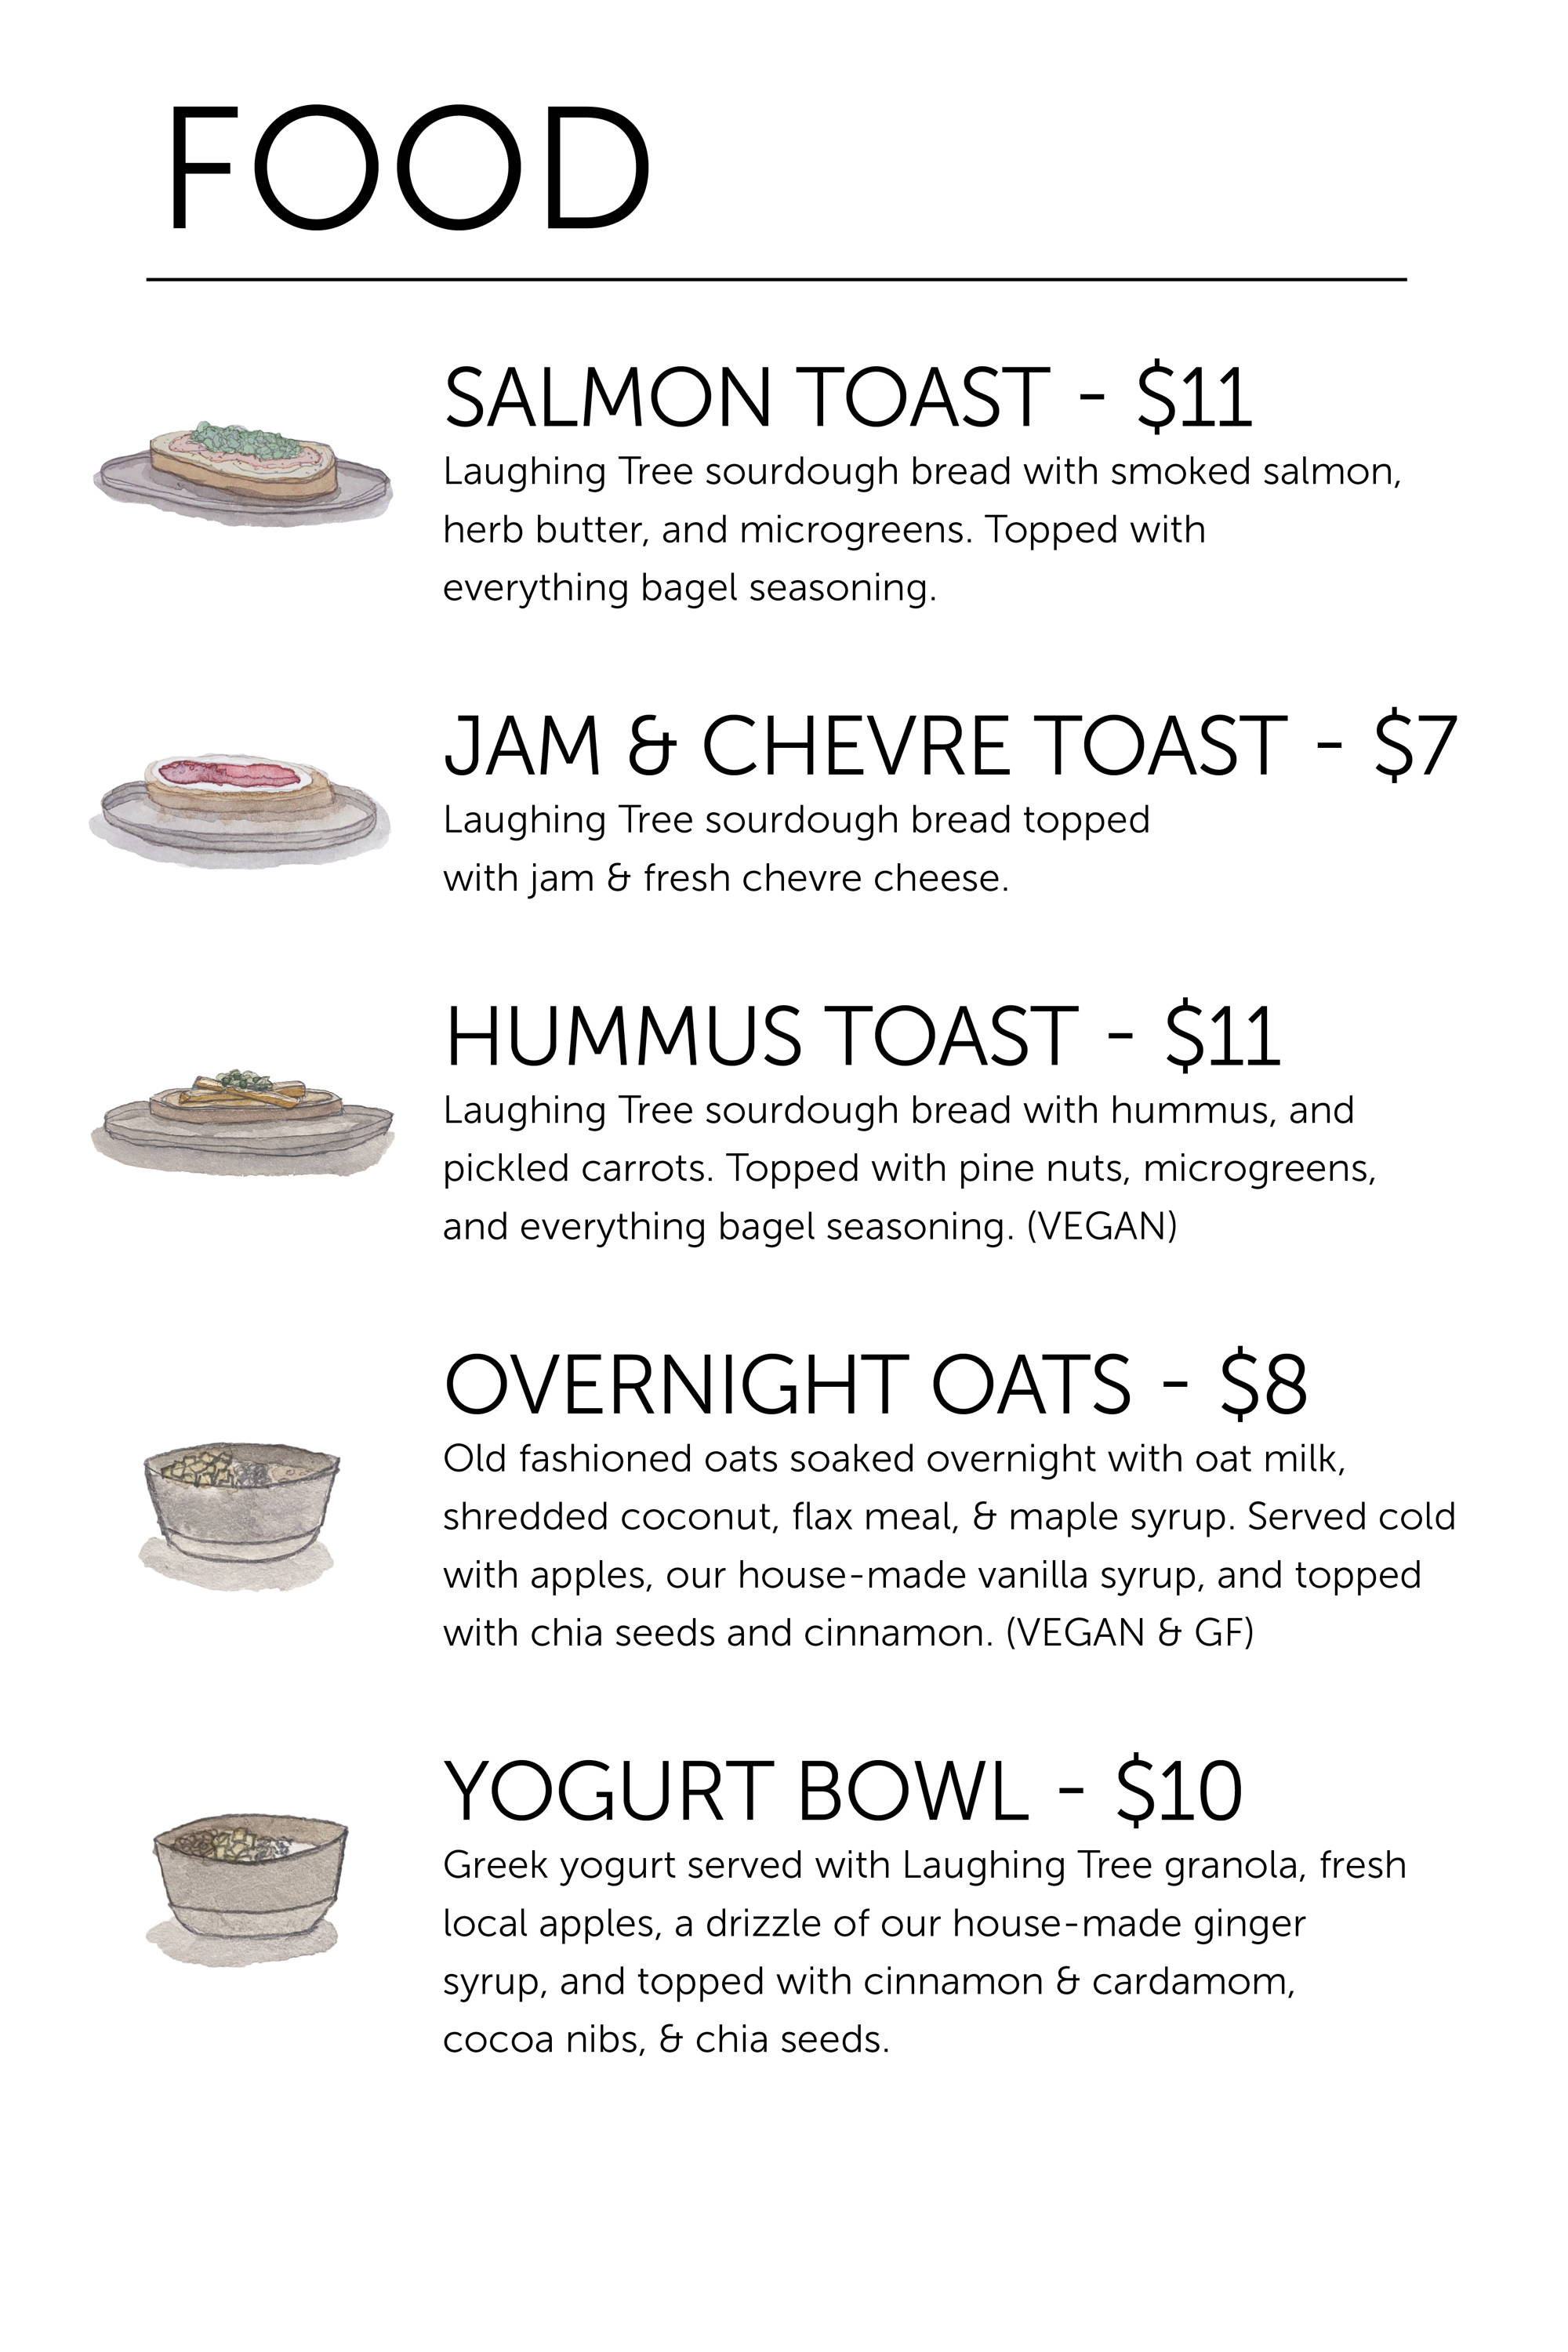 Food Menu (Muskegon Cafe Only) Smoked Salmon Toast - $11 Hummus Toast (Vegan) - $11 Jam & Chevre Toast - $7 Yogurt Bowl - $10 Overnight Oats - $8 Seasonal pastries available